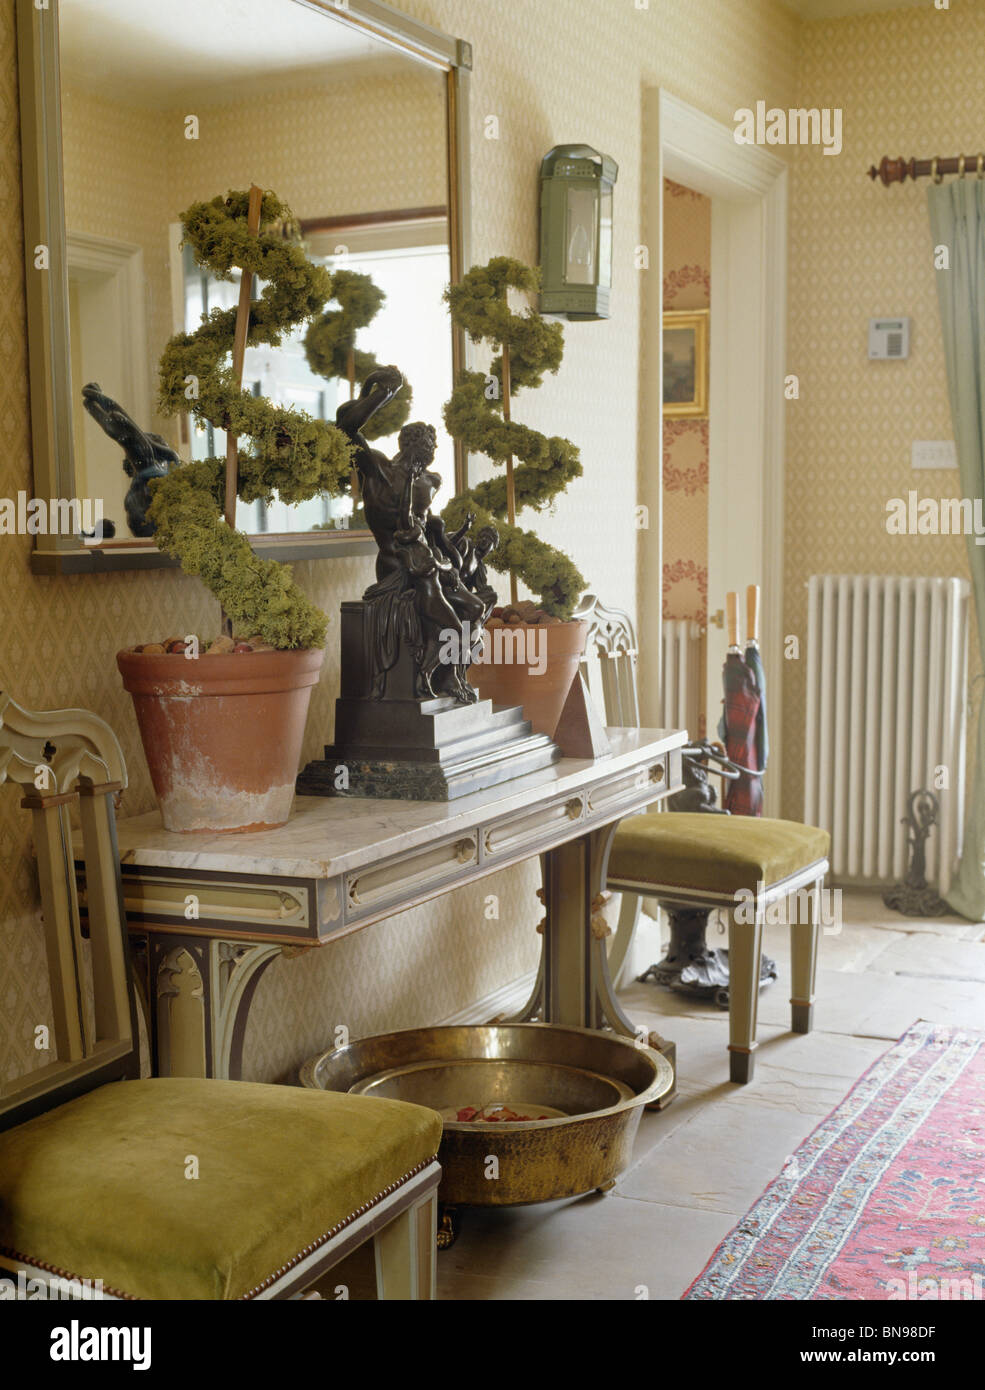 Large mirror above topiary plants on console table in cream